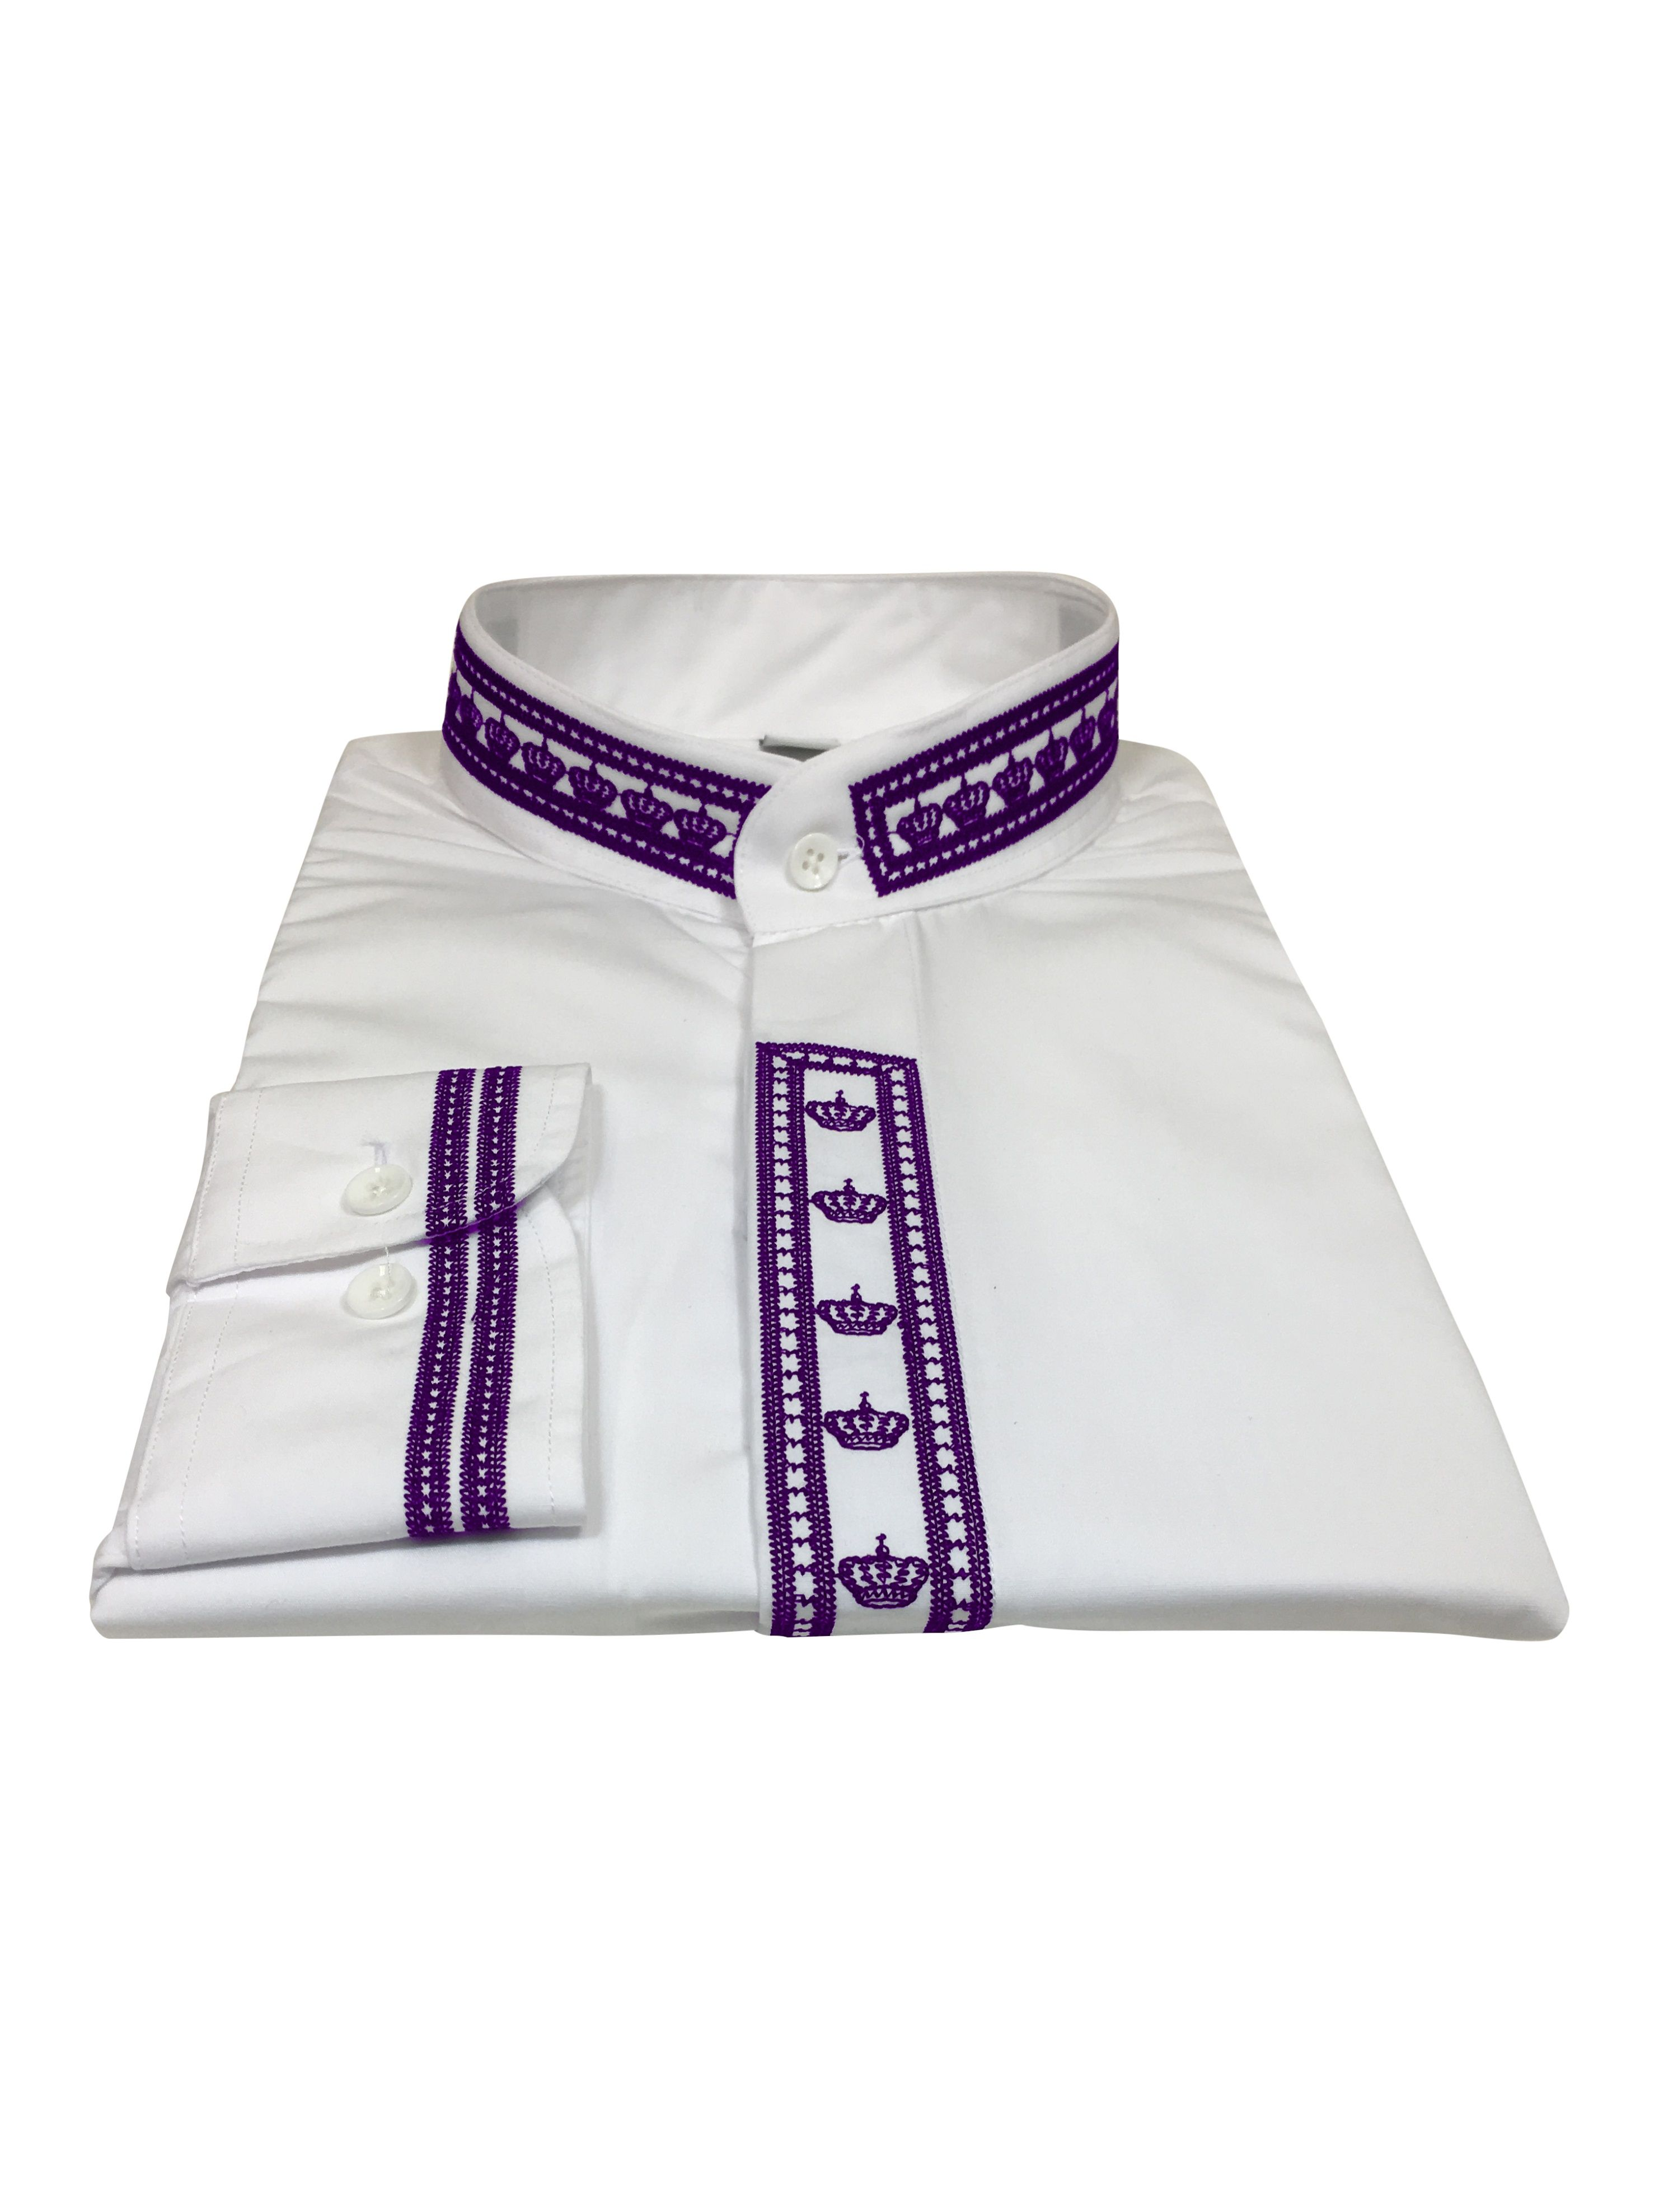 345. Men's Clergy Shirt With Rejoice Crown Fine Embroidery Long Sleeves- White/Purple